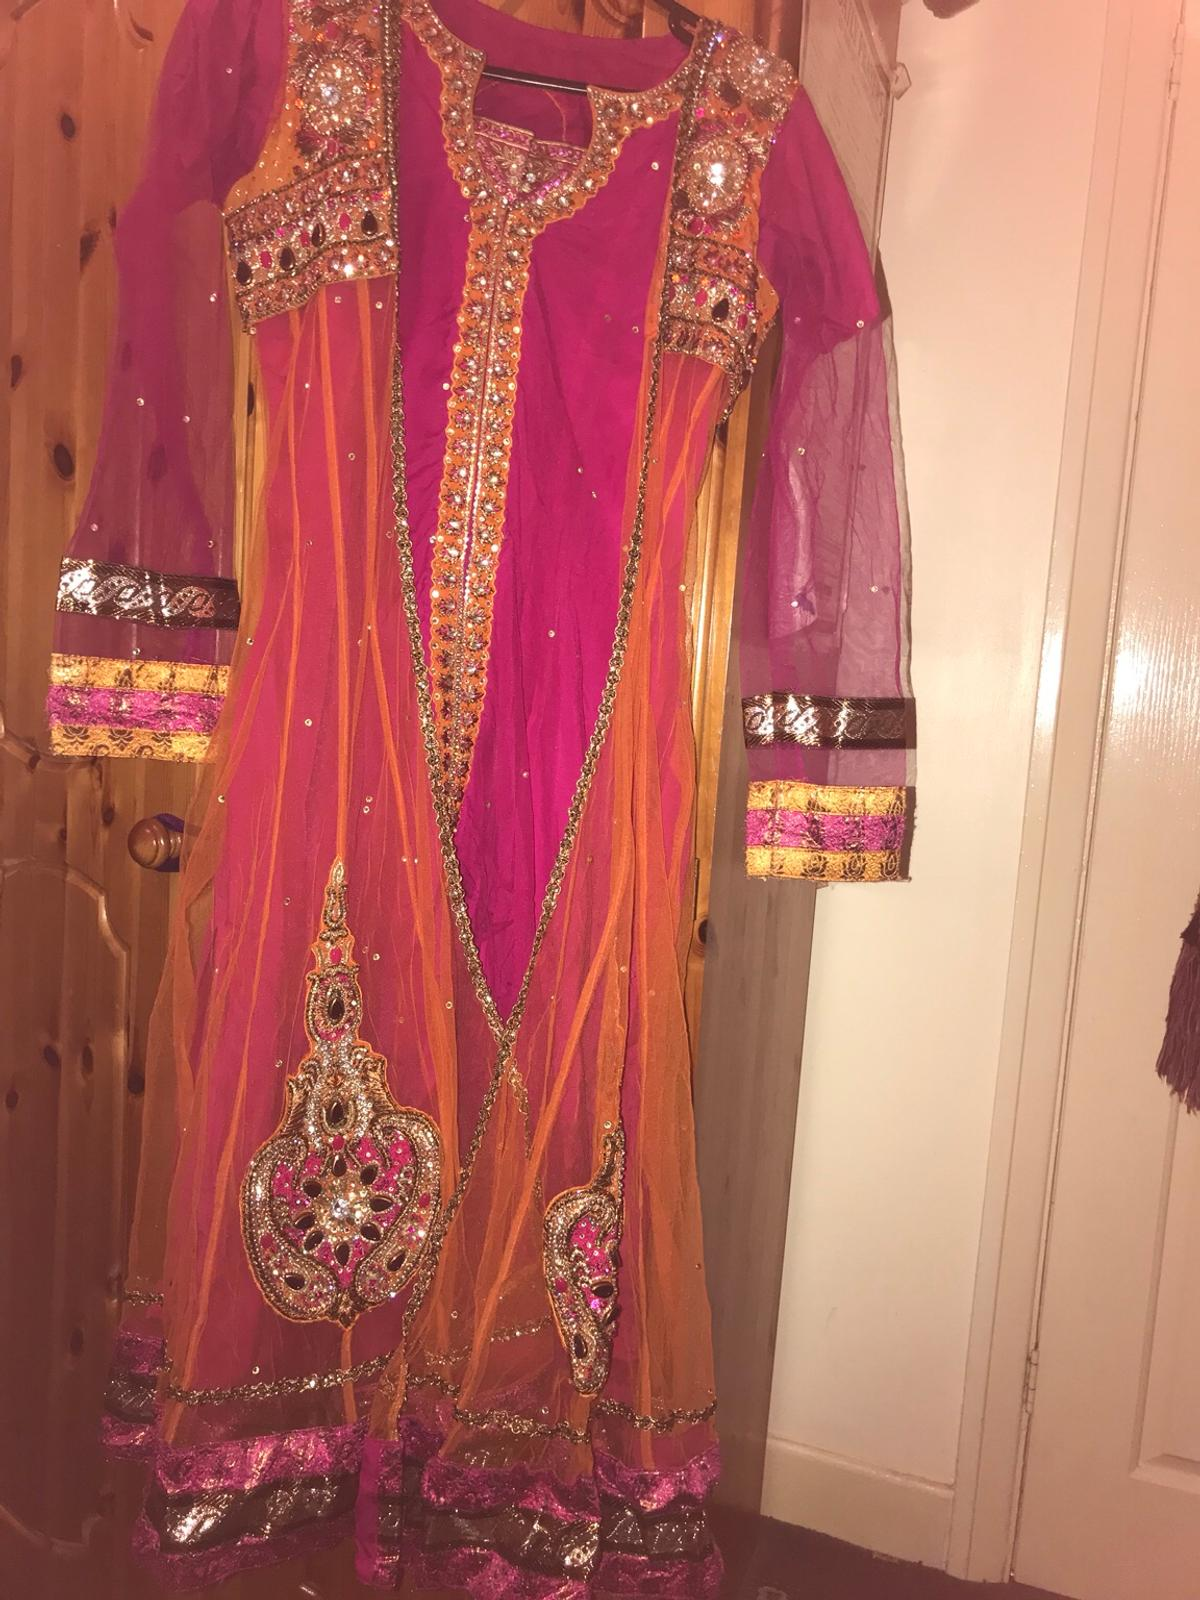 This outfit very suitable for mehndi has beautiful embroidery work on this outfit colour is fascinating. Size 12